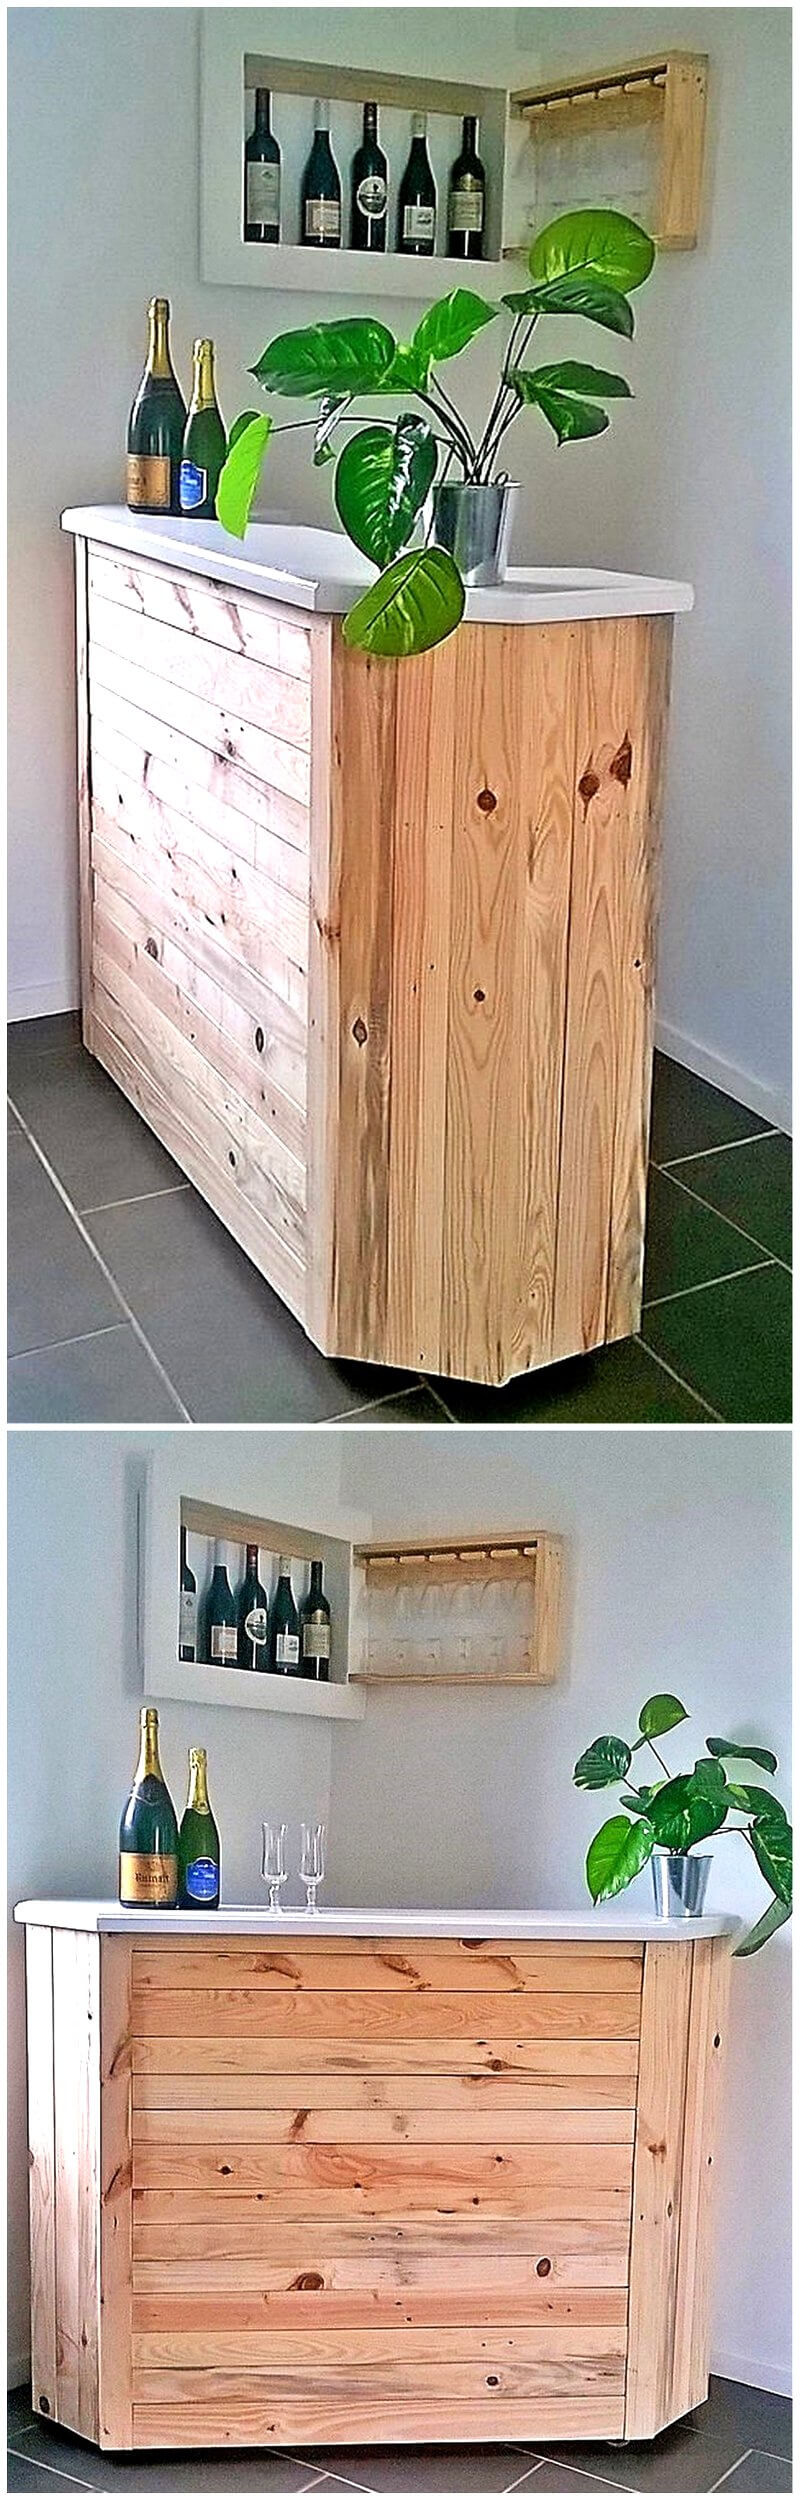 repurposed pallets bar plan